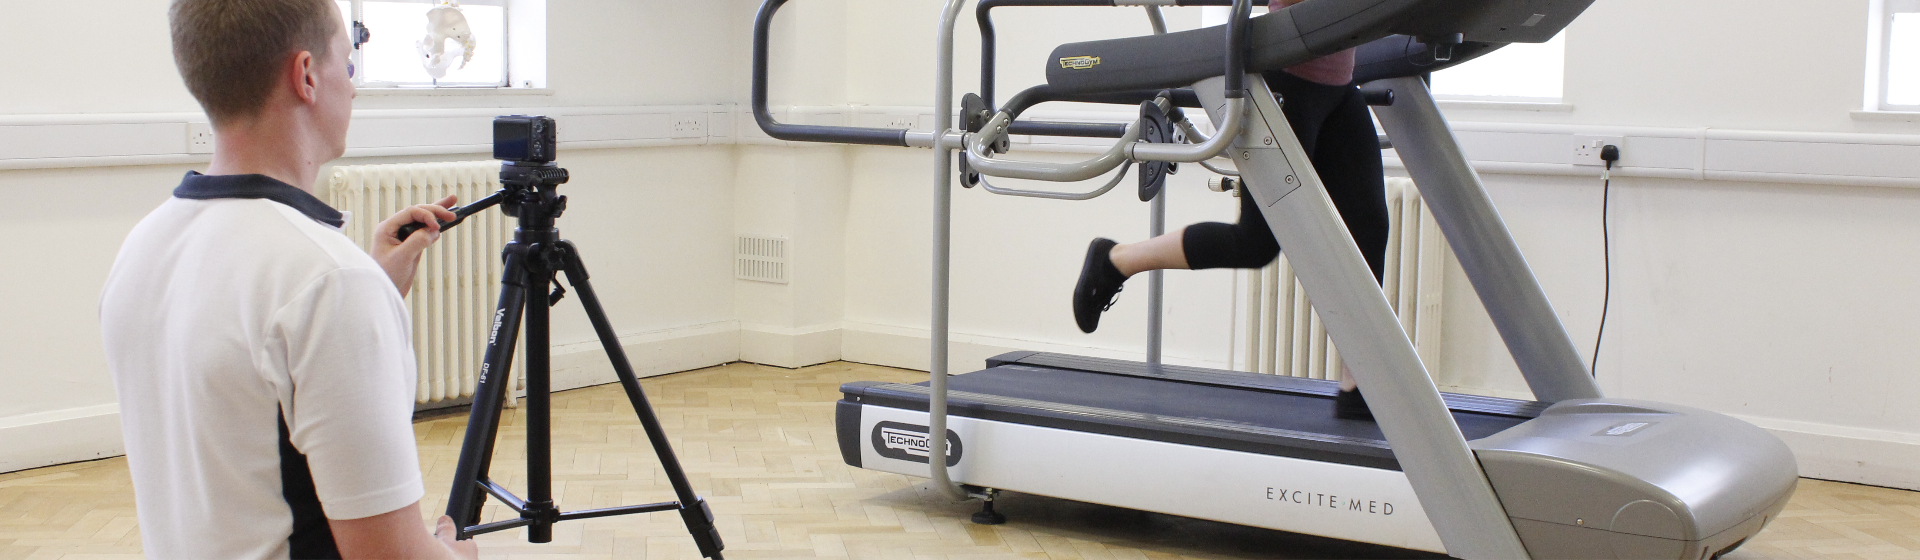 Physiotherapist recording running techniques of athlete on treadmill